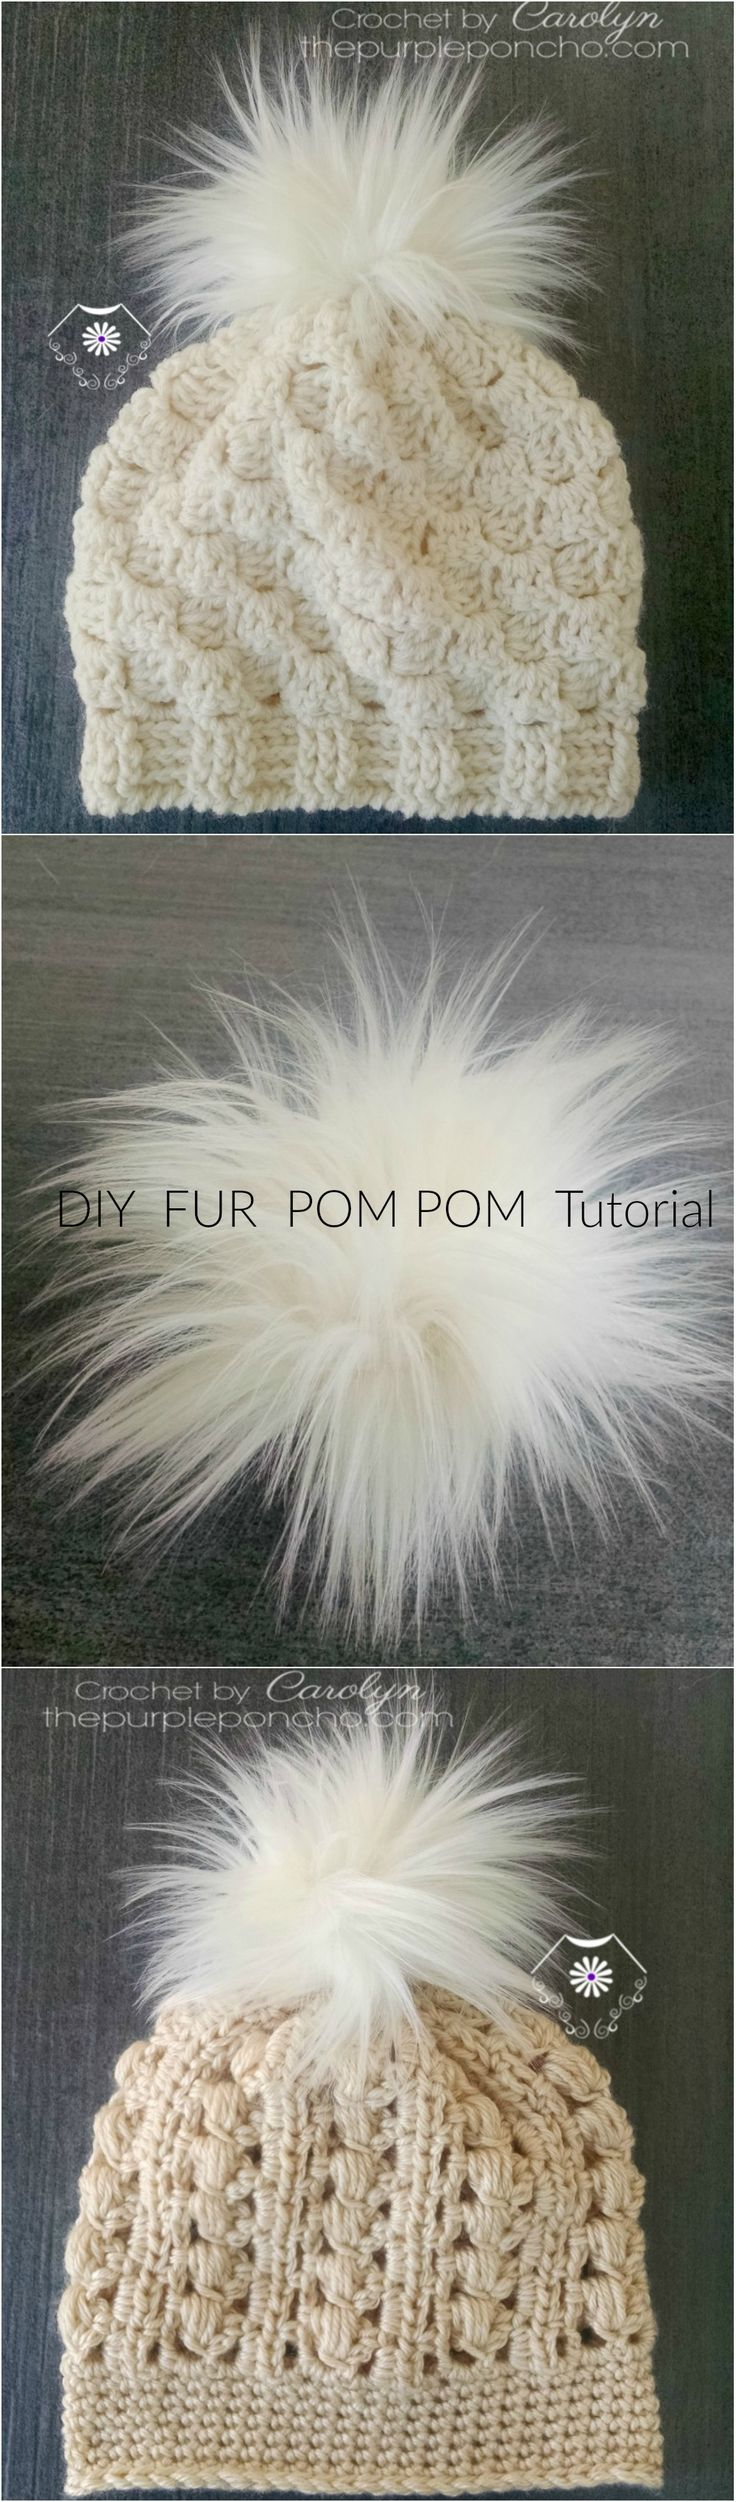 A tutorial on you how to make your own fur pom poms! Fur pom poms on garments are really on trend right now. I've seen them on almost everything from ponchos, handbags, scarves, and of course…